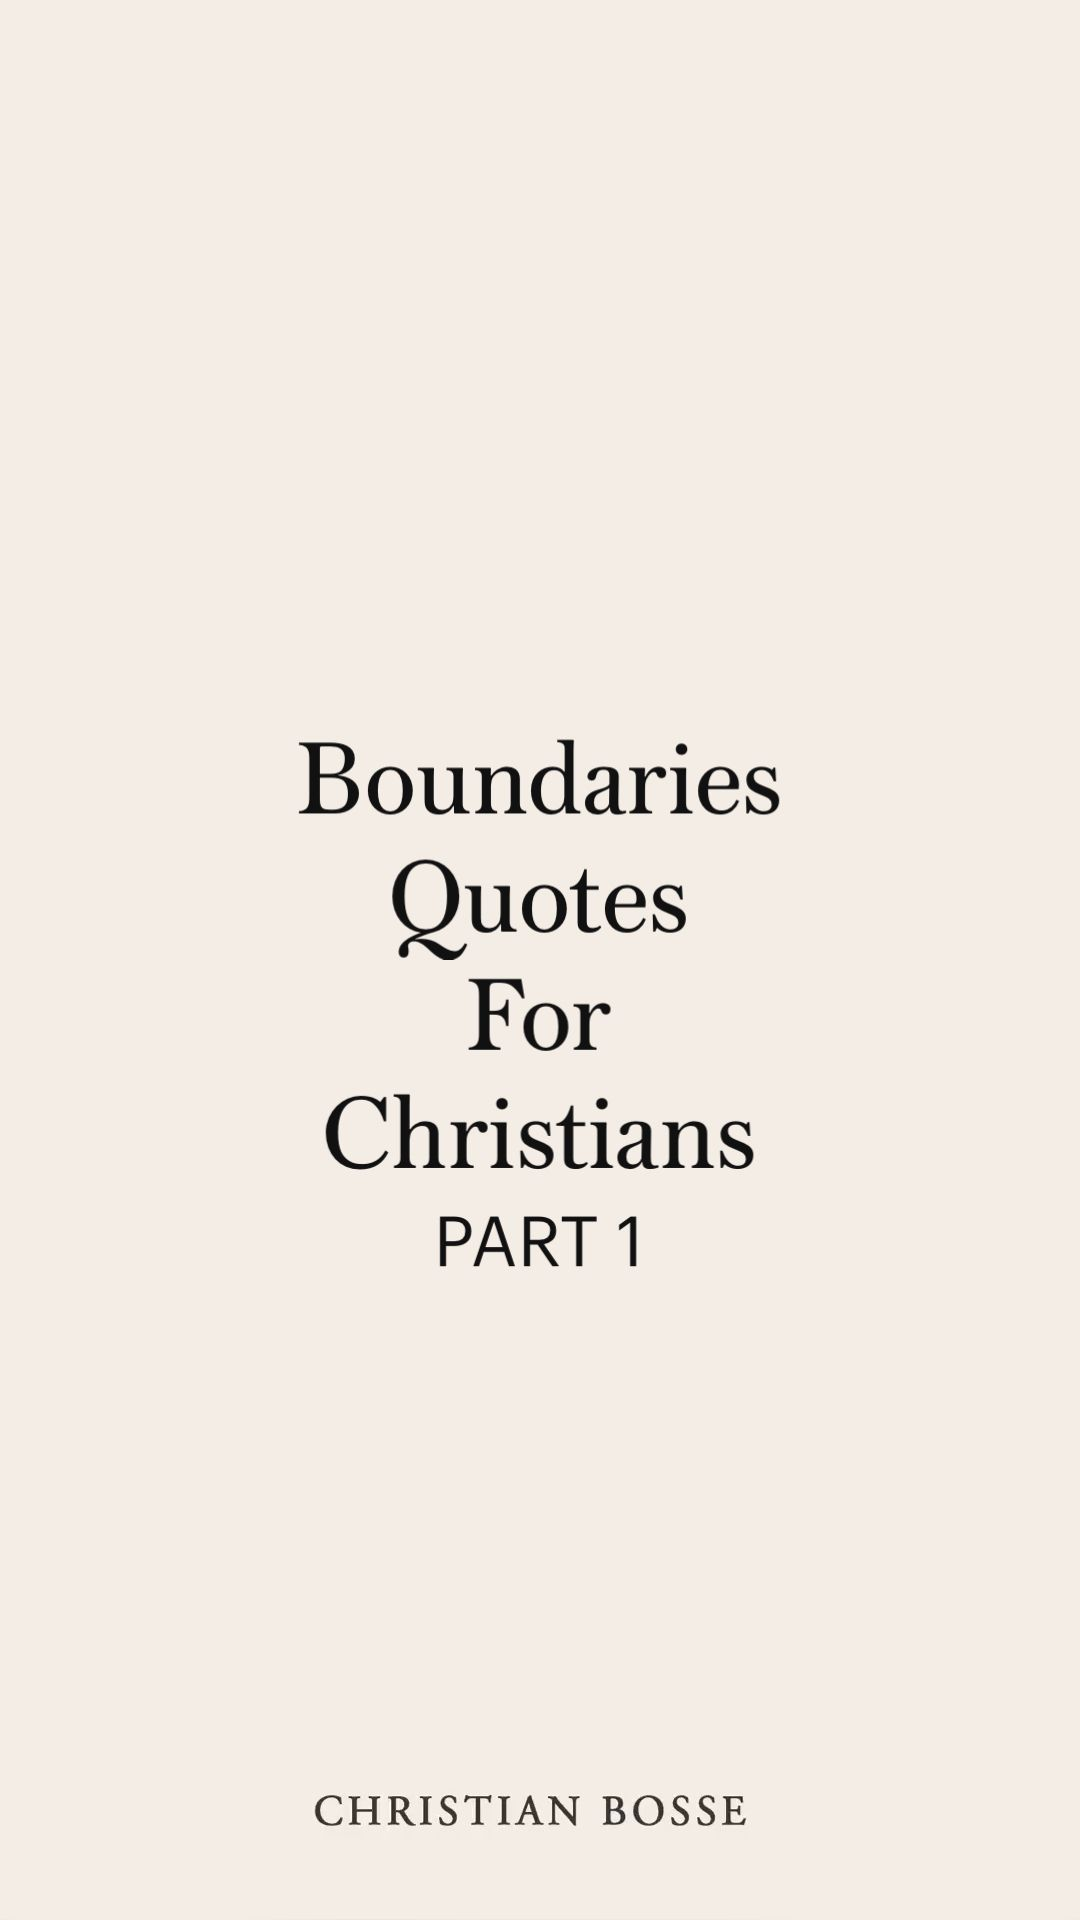 Boundaries Quotes For Christians